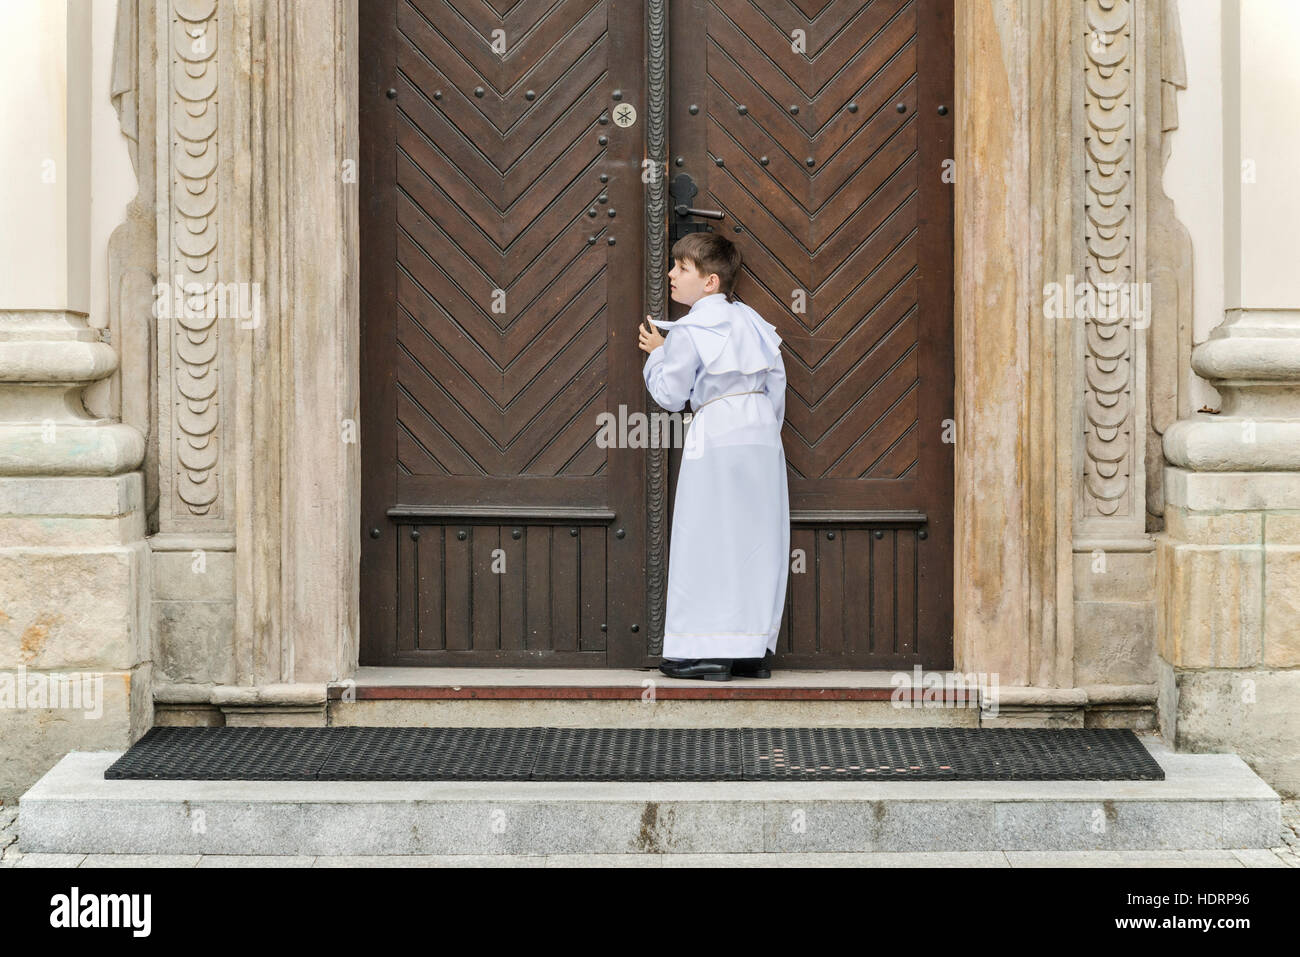 Boy entering church for First Holy Communion event, Cathedral Basilica in Lowicz, Mazovia, Poland - Stock Image